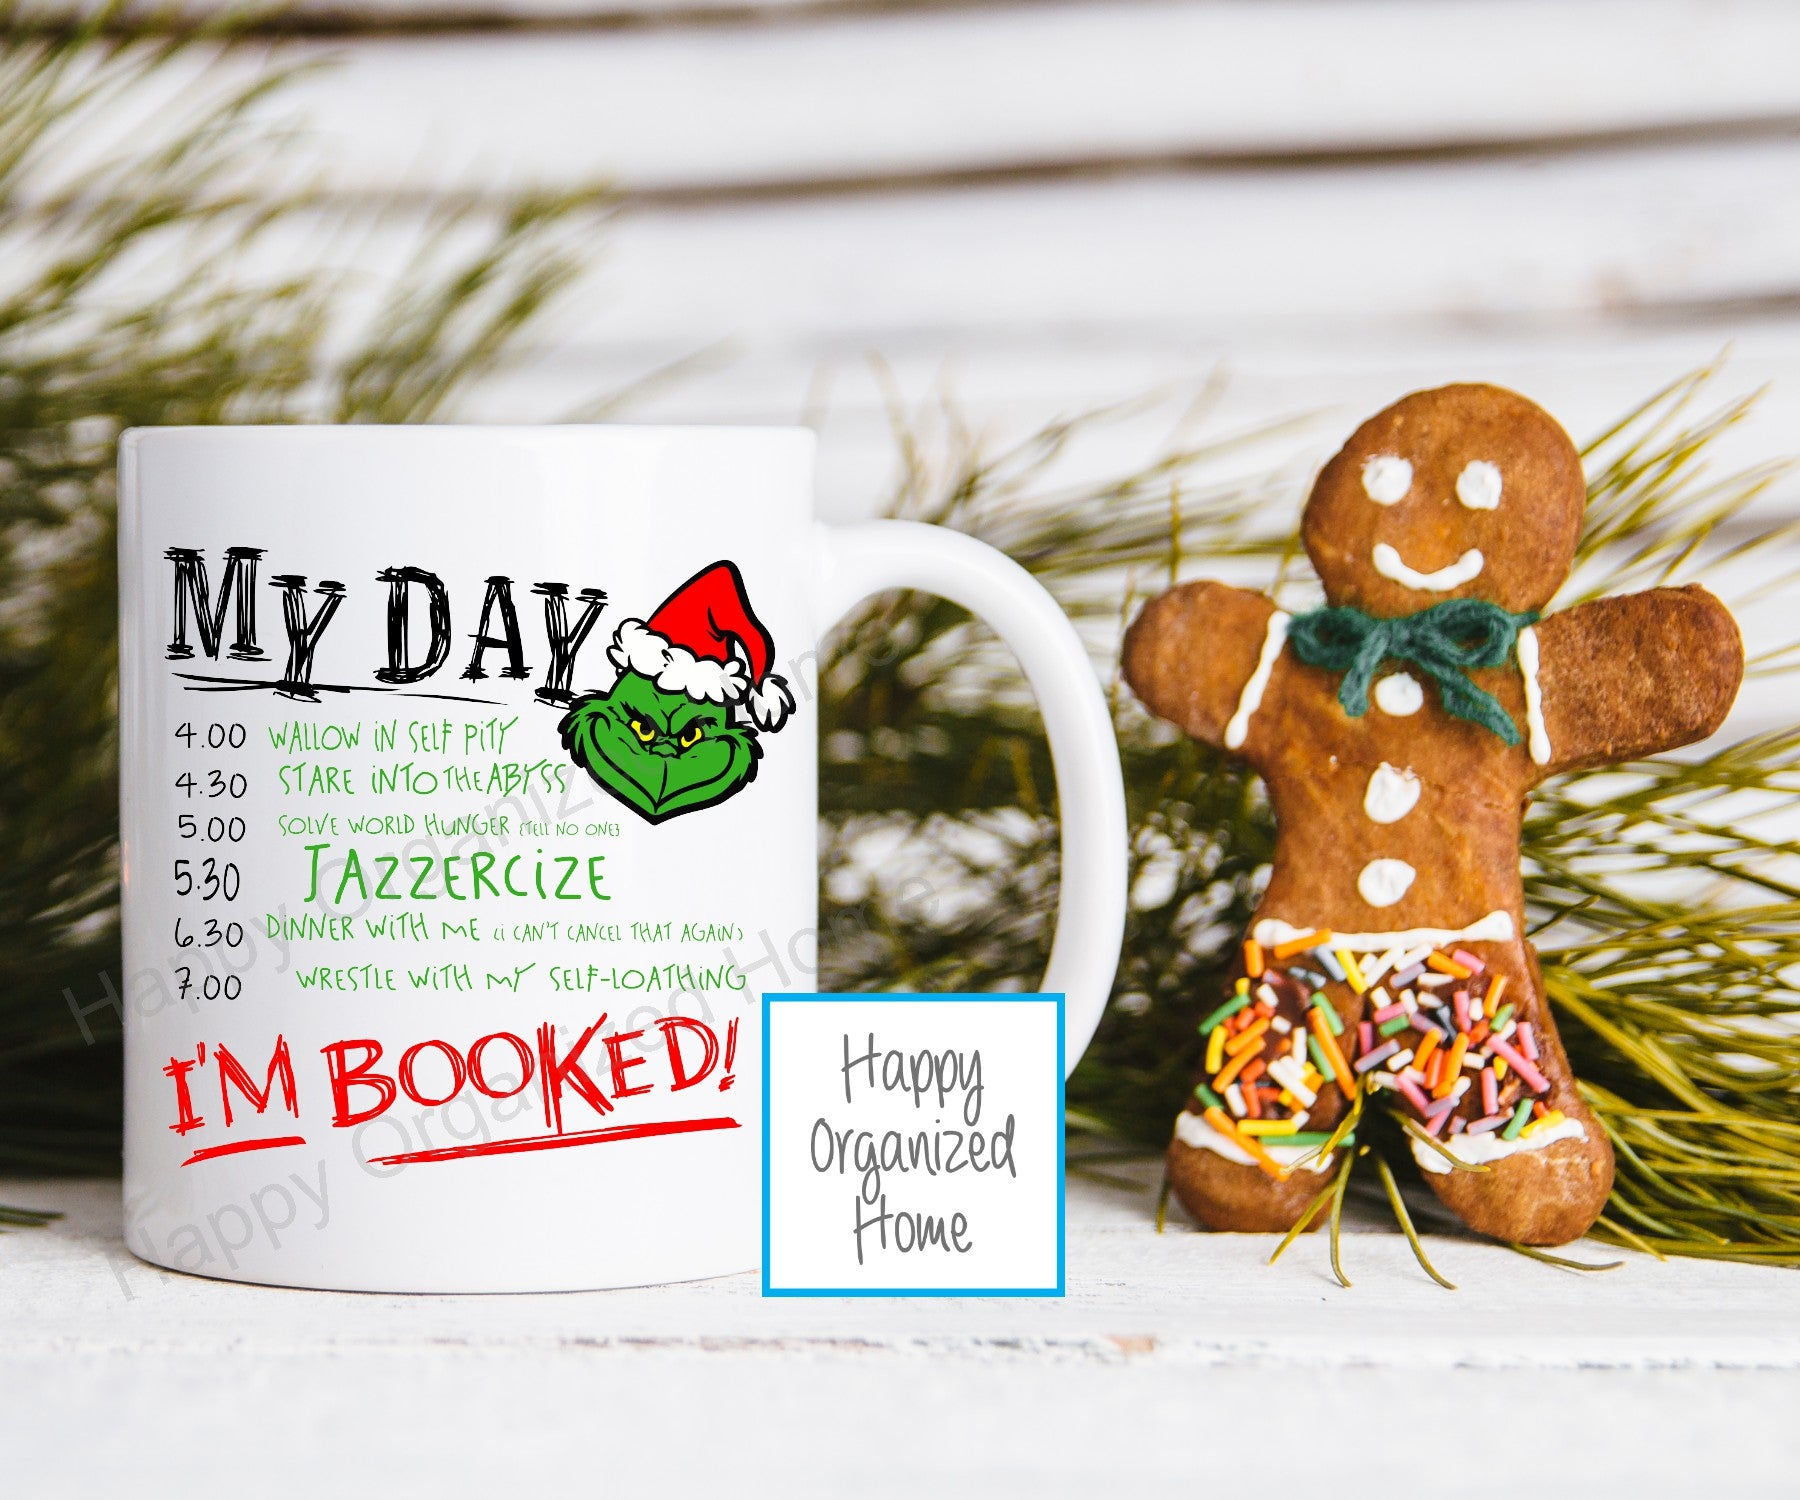 I'm booked! The Grinch, My Day - Christmas Mug